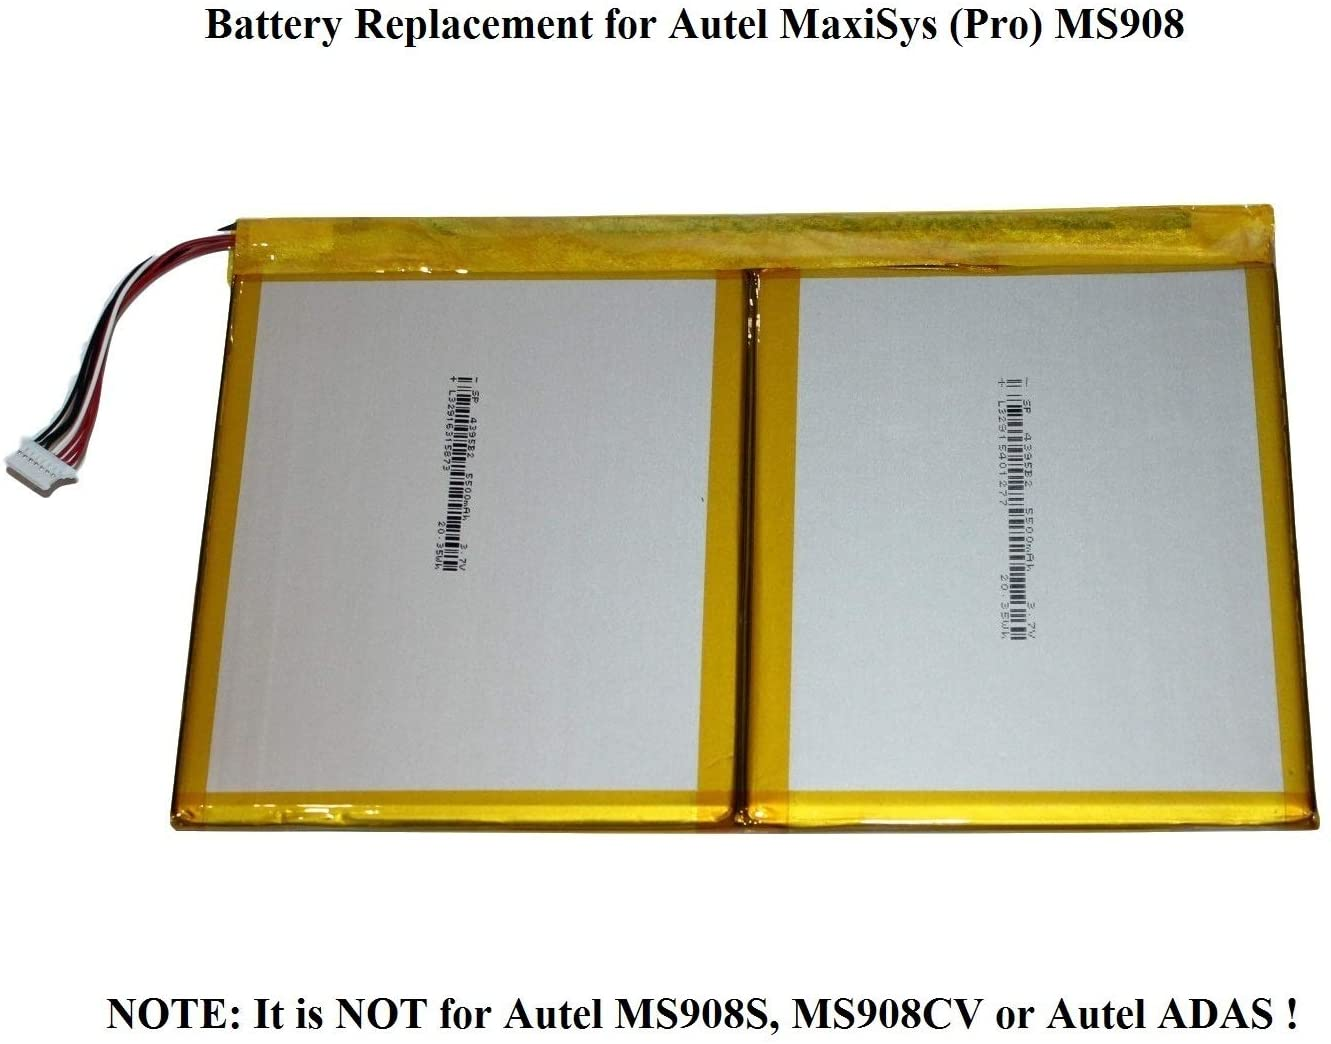 Battery for Autel Maxisys Elite MS908 MS908S PRO MS908CV MS906TS MS906BT TS608 DS808 MX808IM MK808 MP808